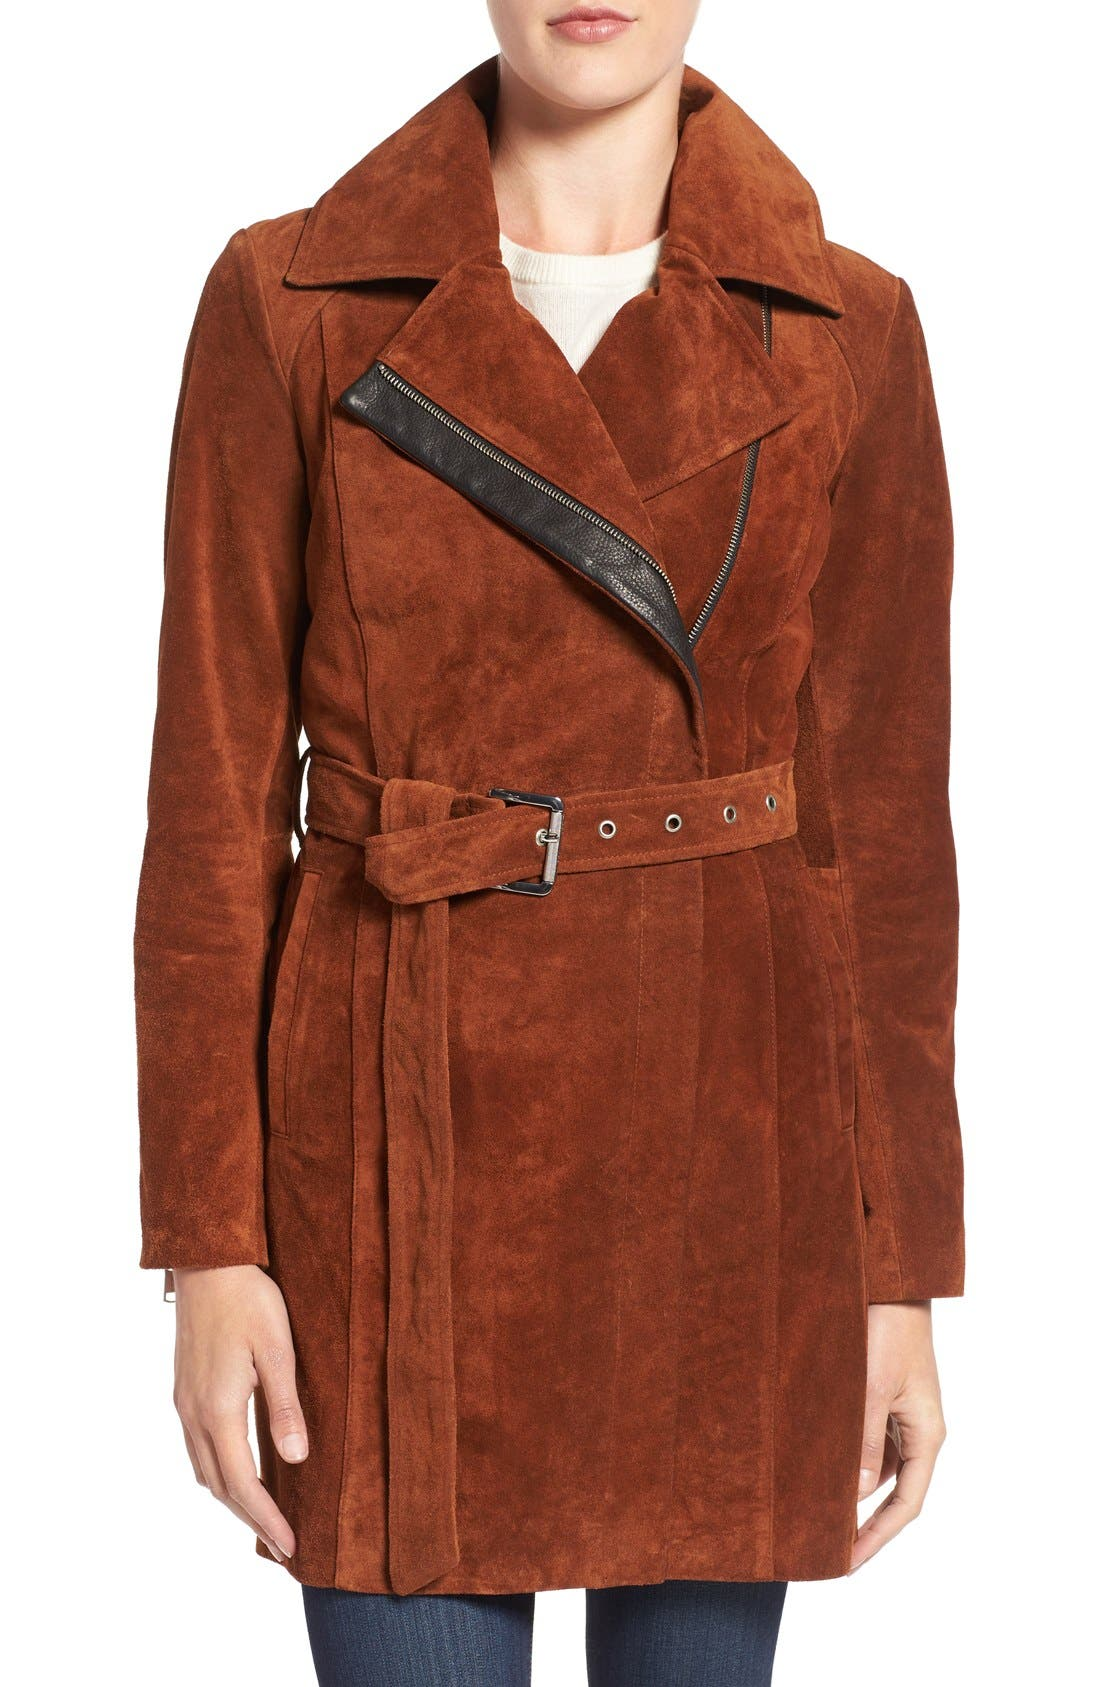 Alternate Image 1 Selected - Andrew Marc 'Sienna 33' Suede Belted Trench Coat